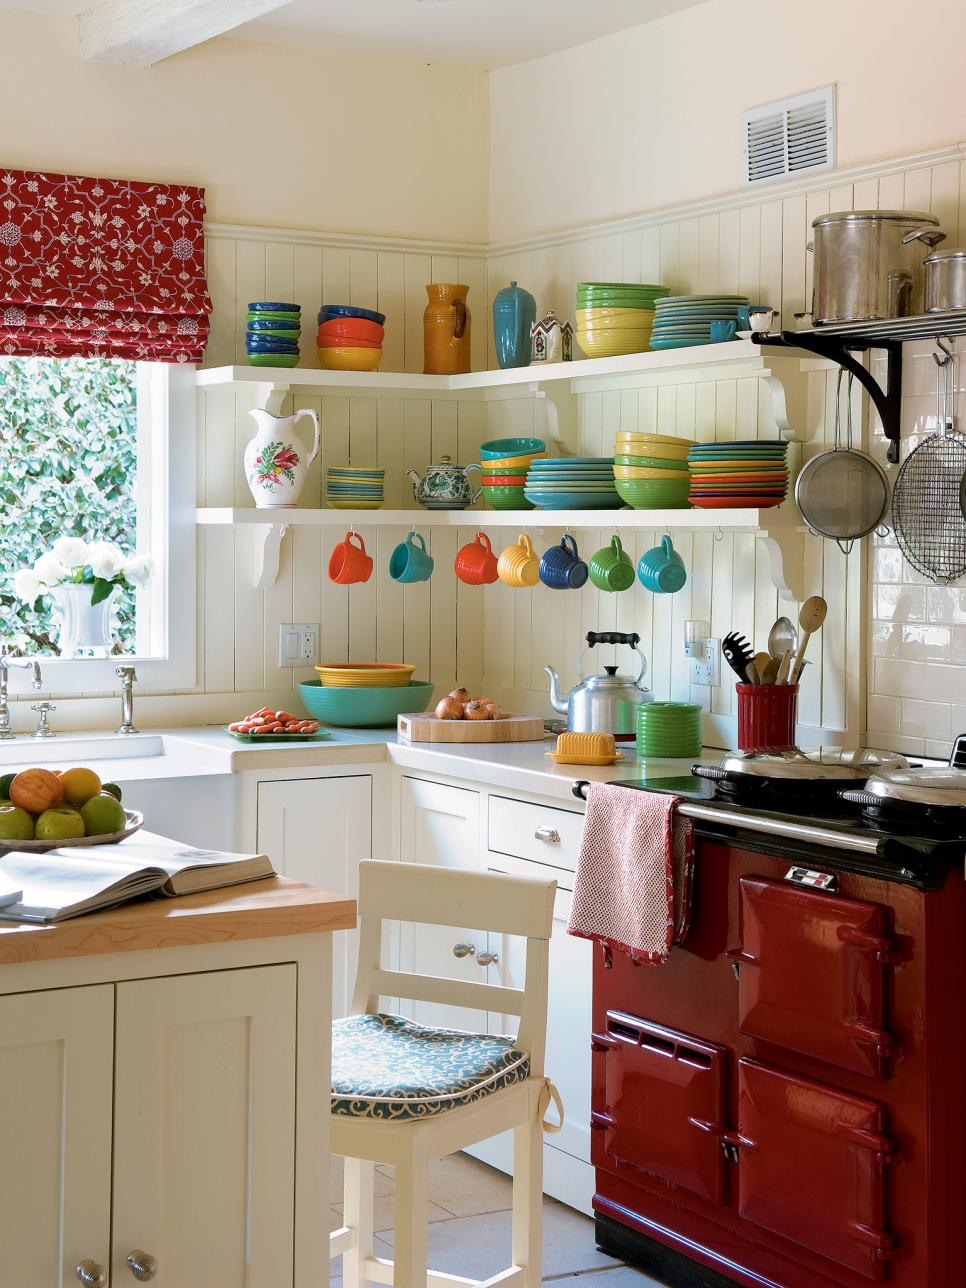 Kitchen Remodel For Small Kitchen Pictures Of Small Kitchen Design Ideas From Hgtv Hgtv